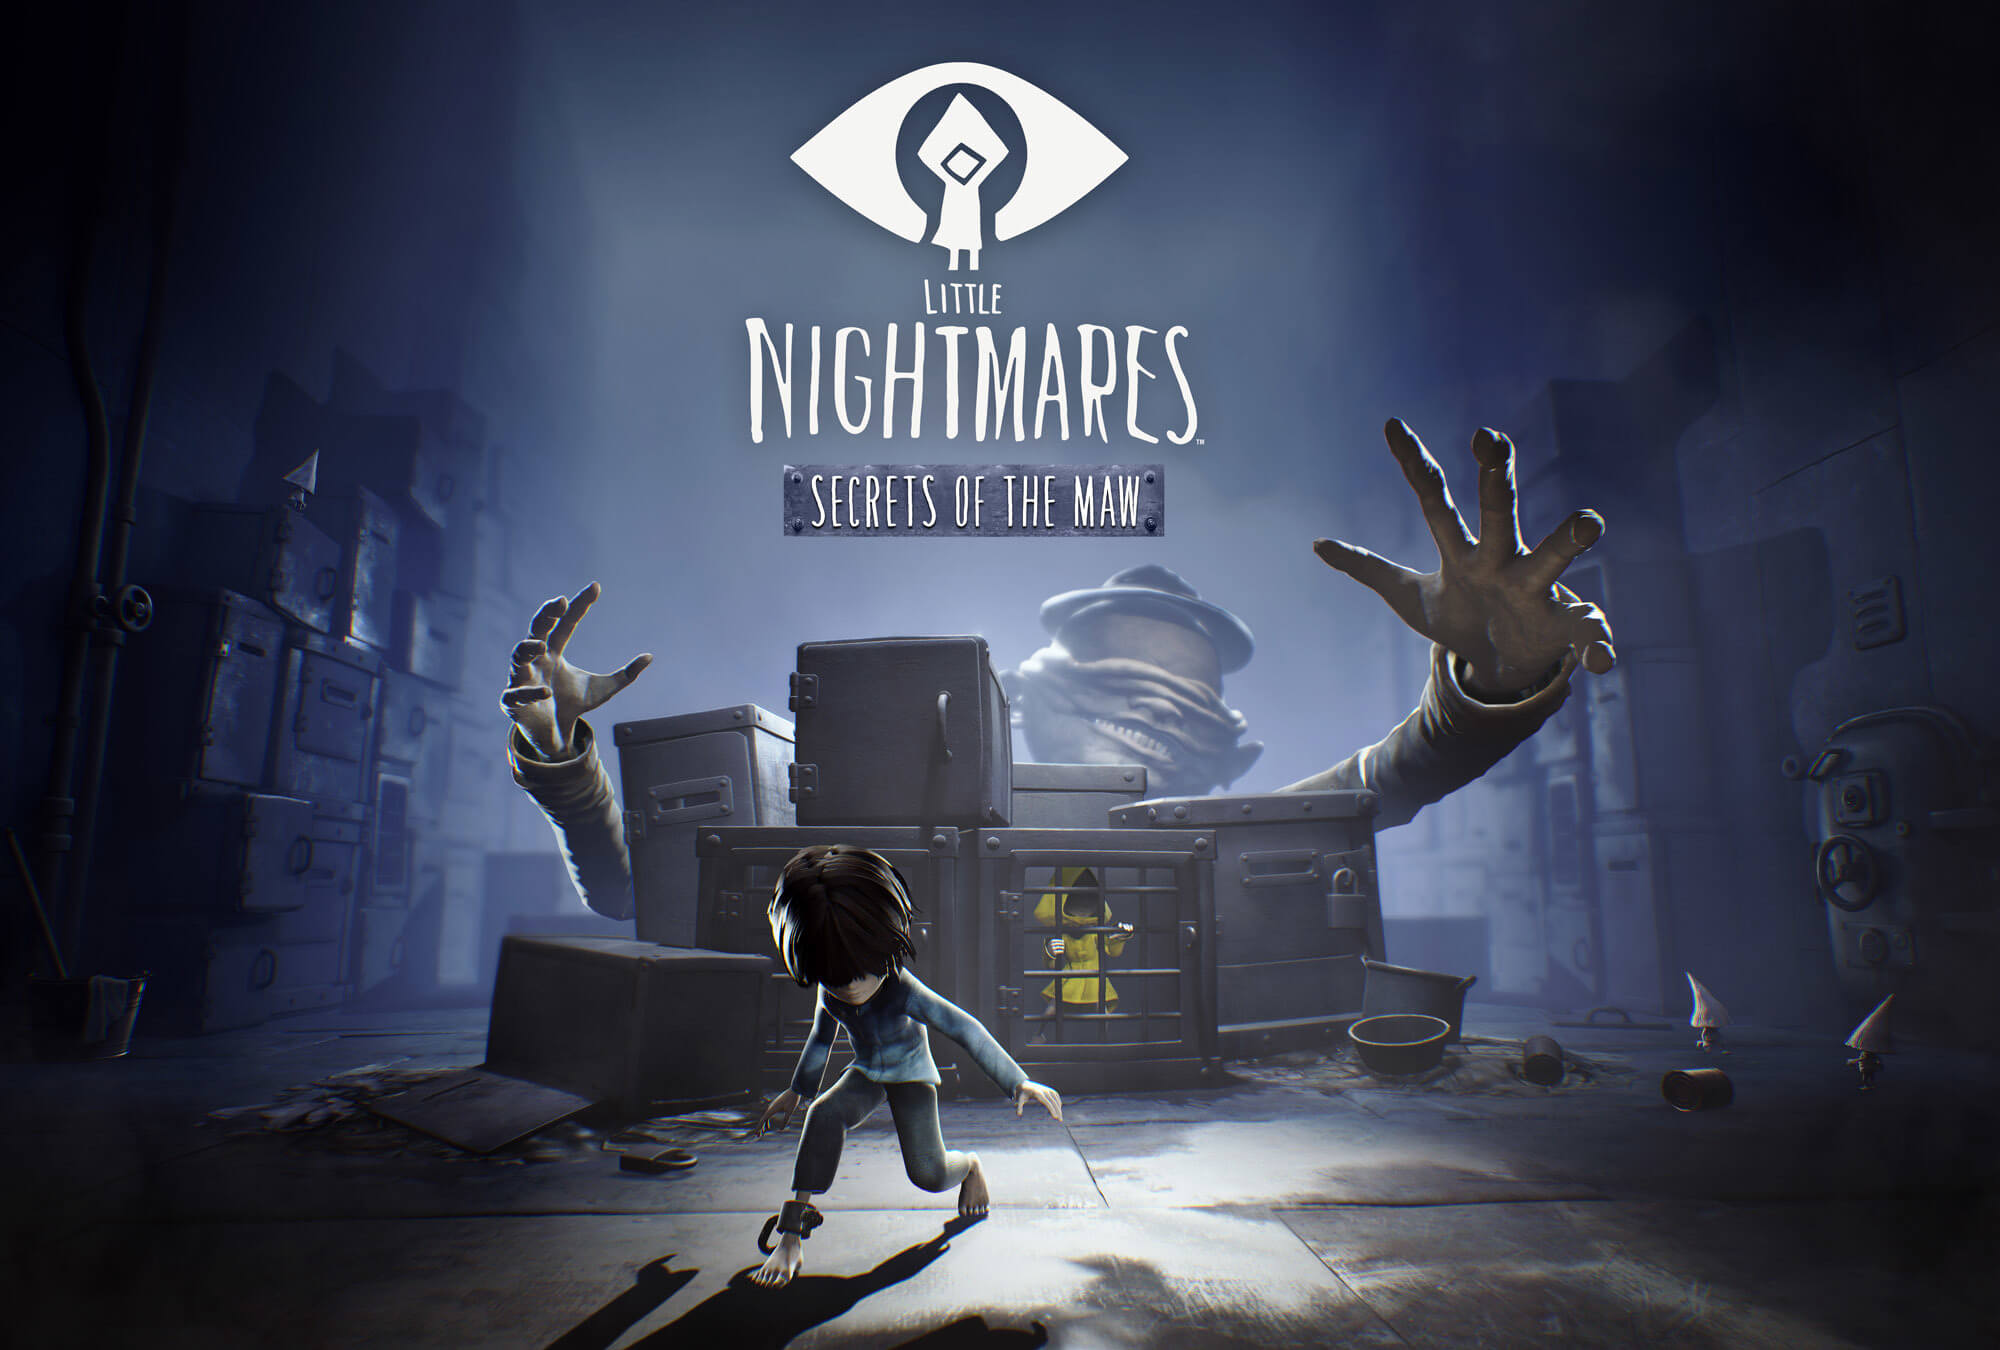 little nightmares dlc 1 - Little Nightmares DLC Goes to The Depths